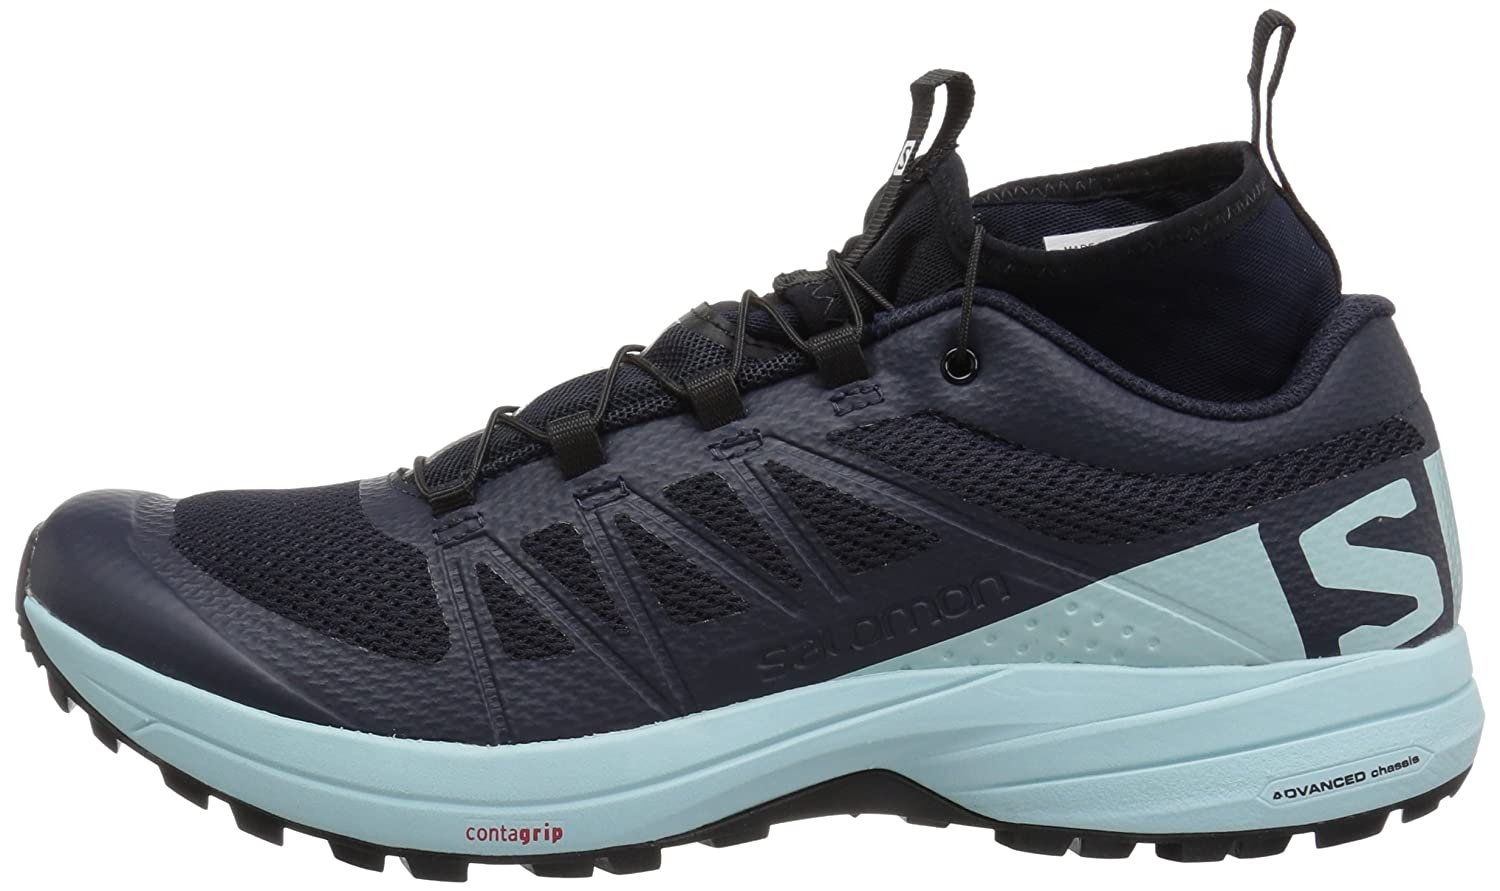 Salomon Women's XA Enduro W Trail Runner B073JXDCJR 6.5 B(M) US|Night Sky